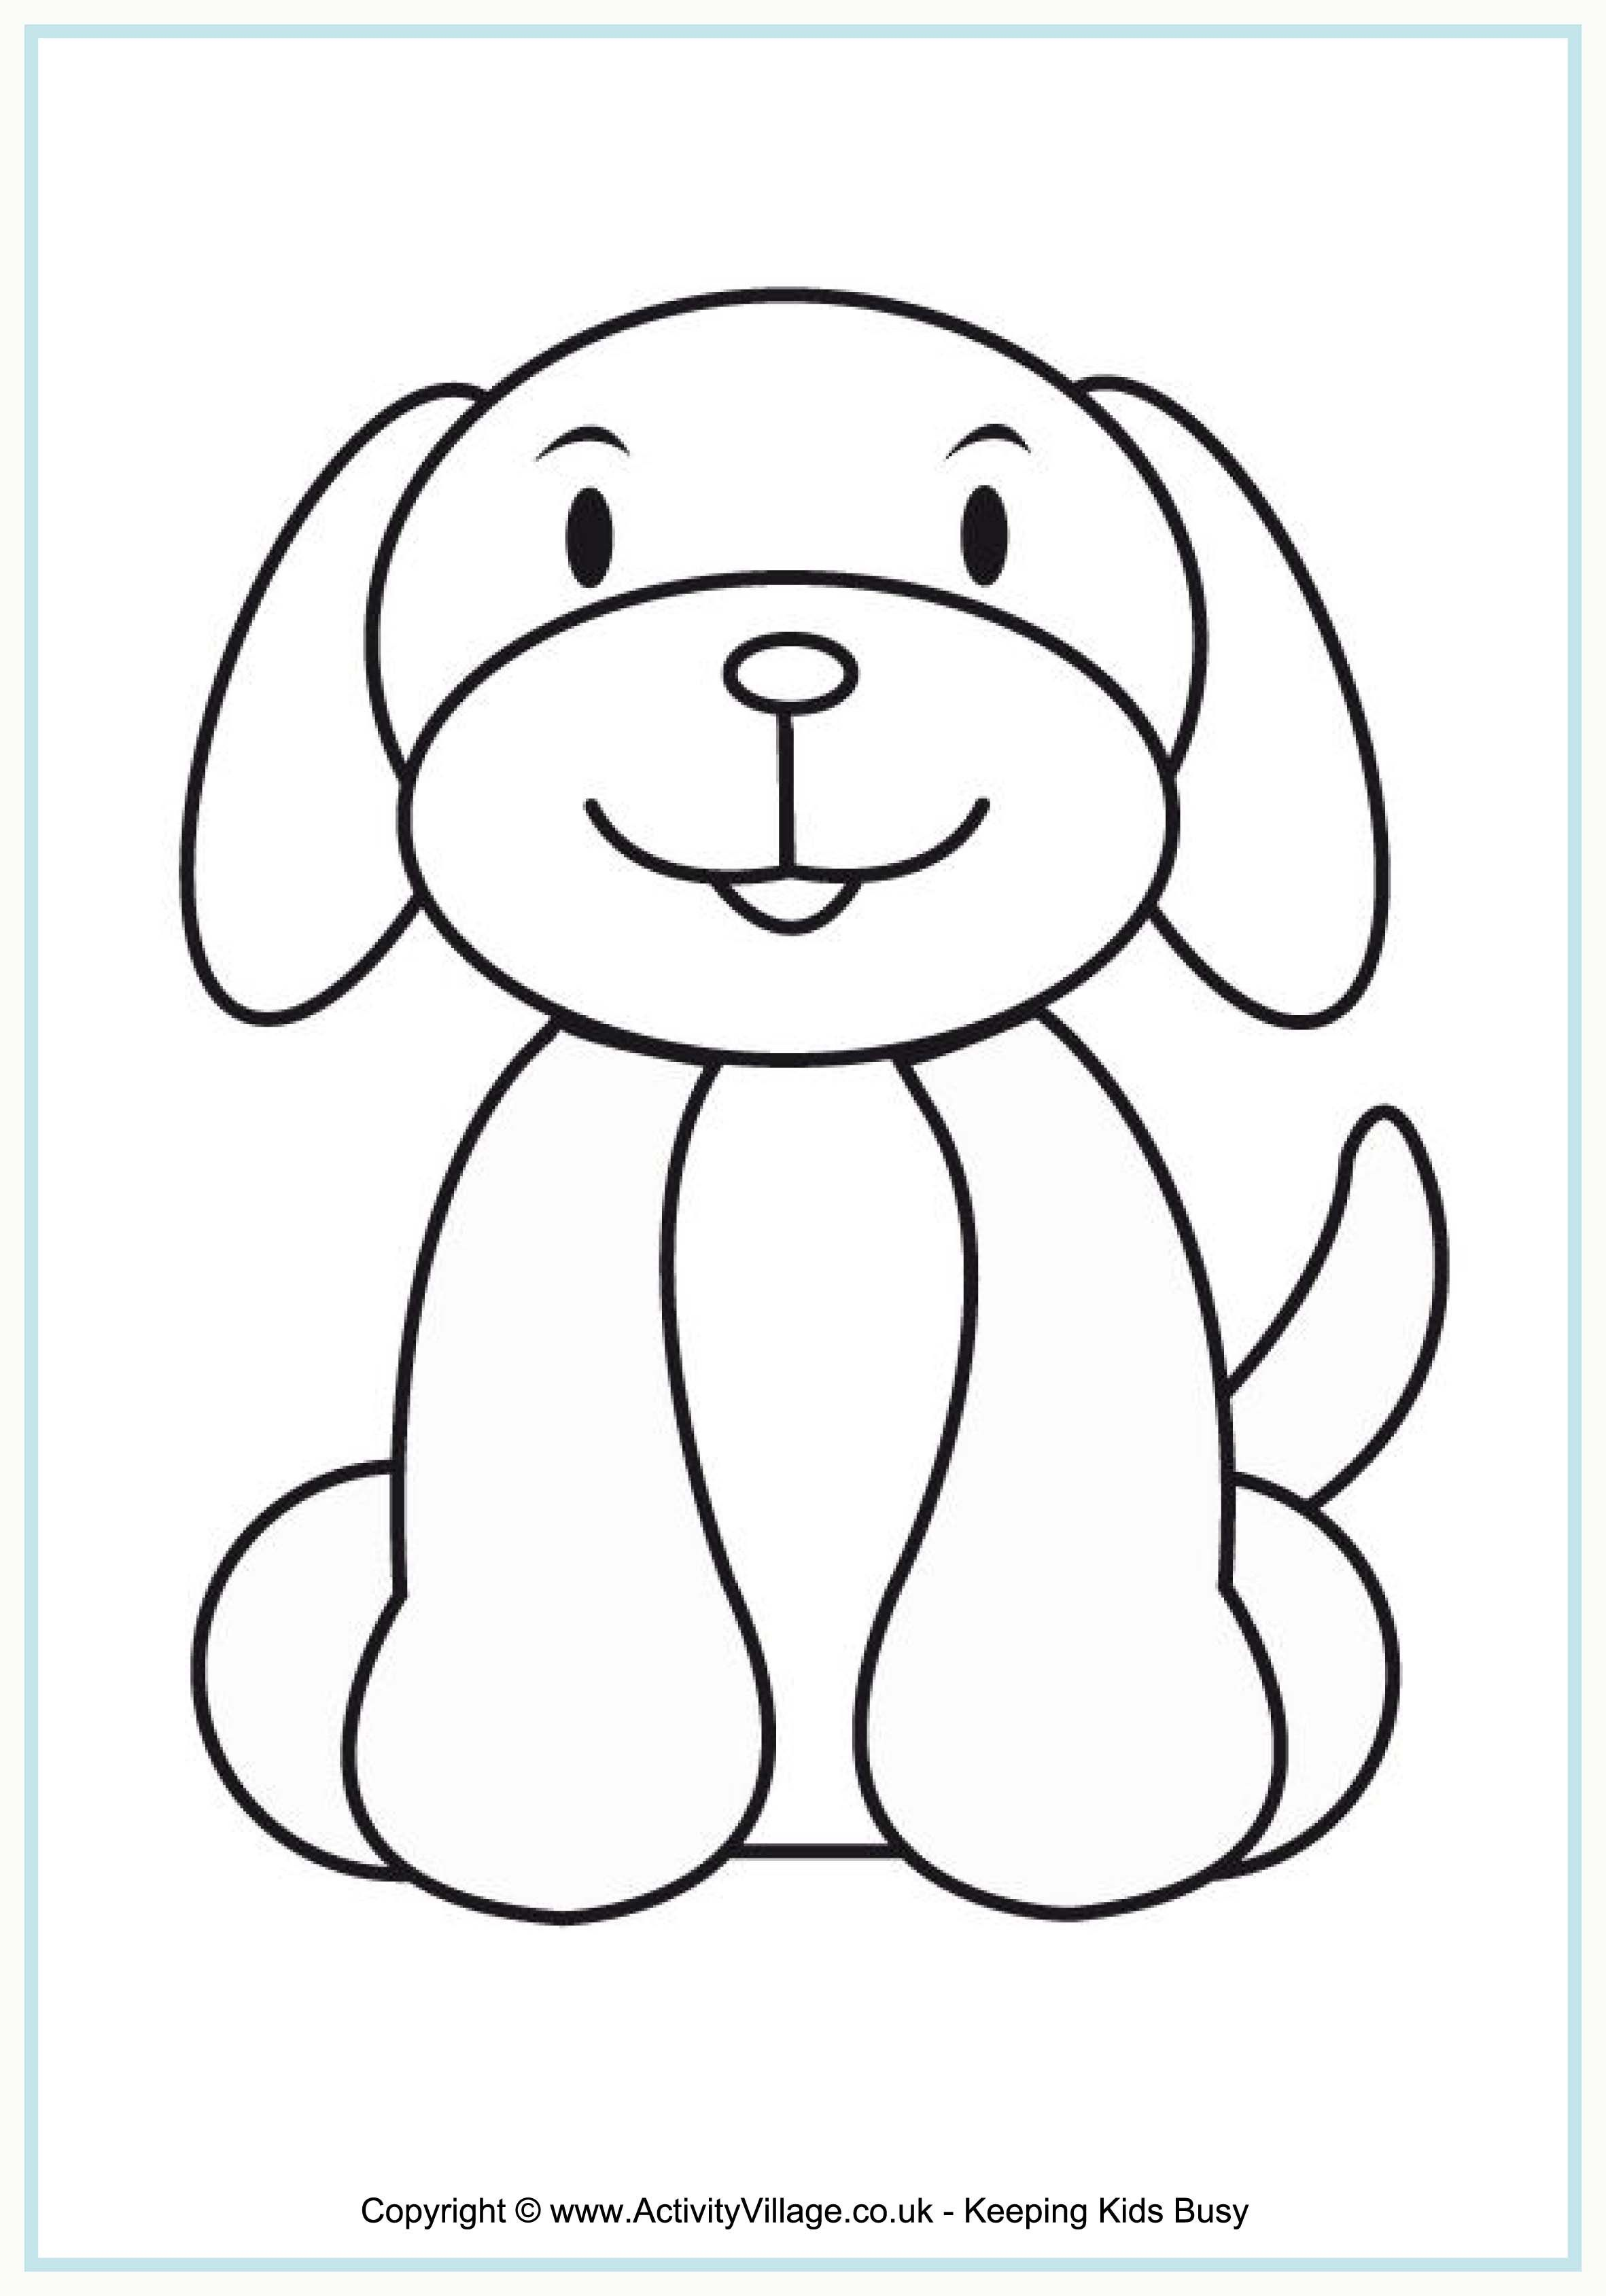 Pin By Bojana Cvetanovic On For Children Dog Coloring Page Dog